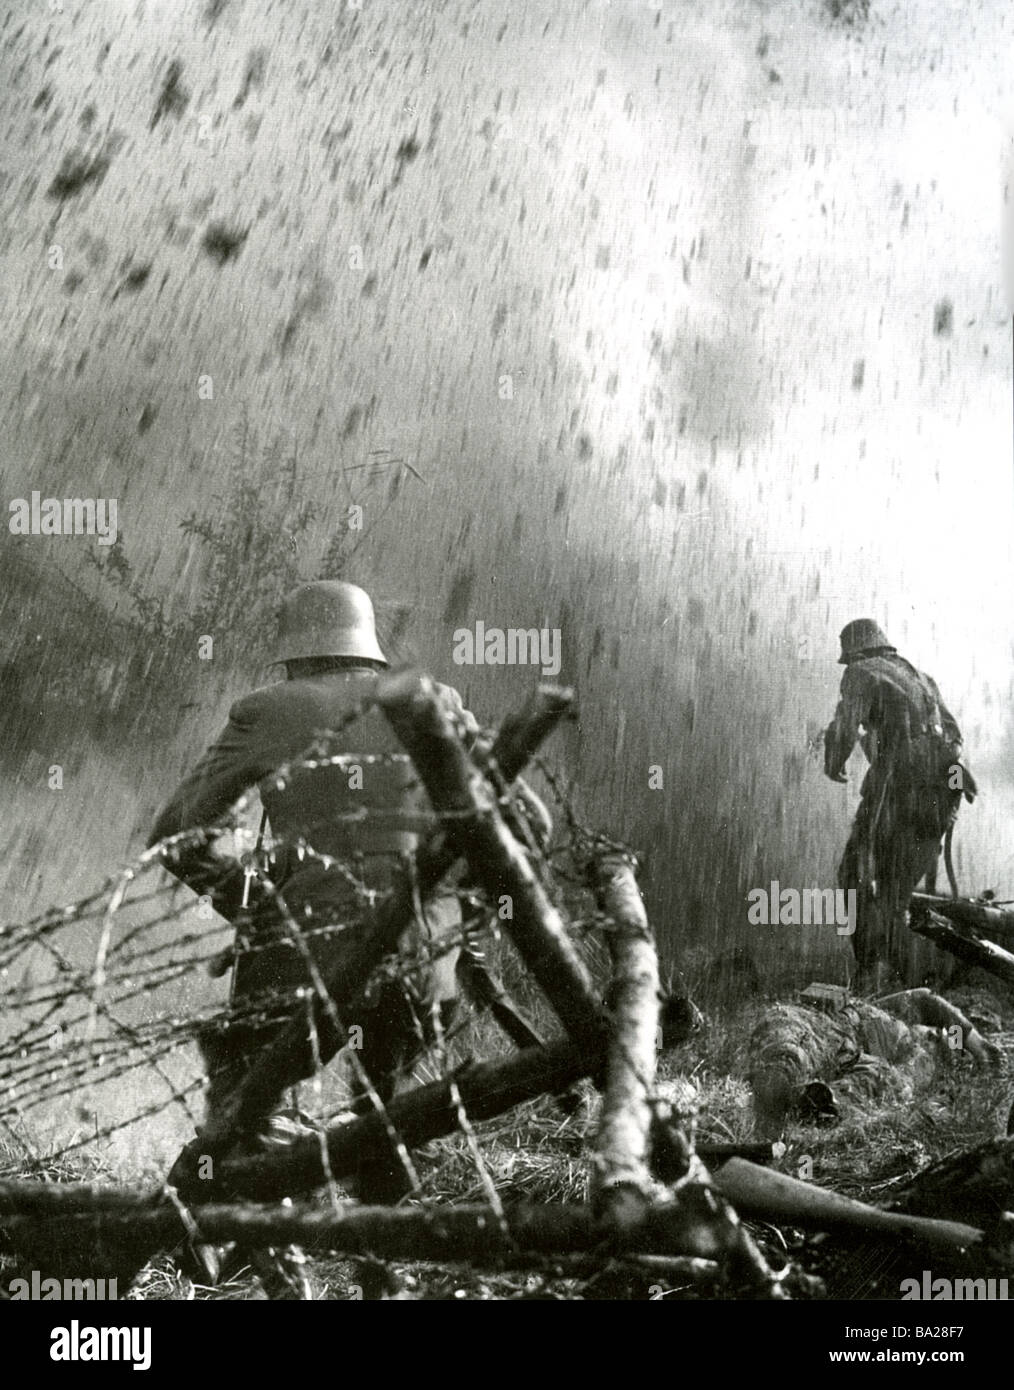 GERMAN SOLDIERS advance through wire defences in 1917 - Stock Image